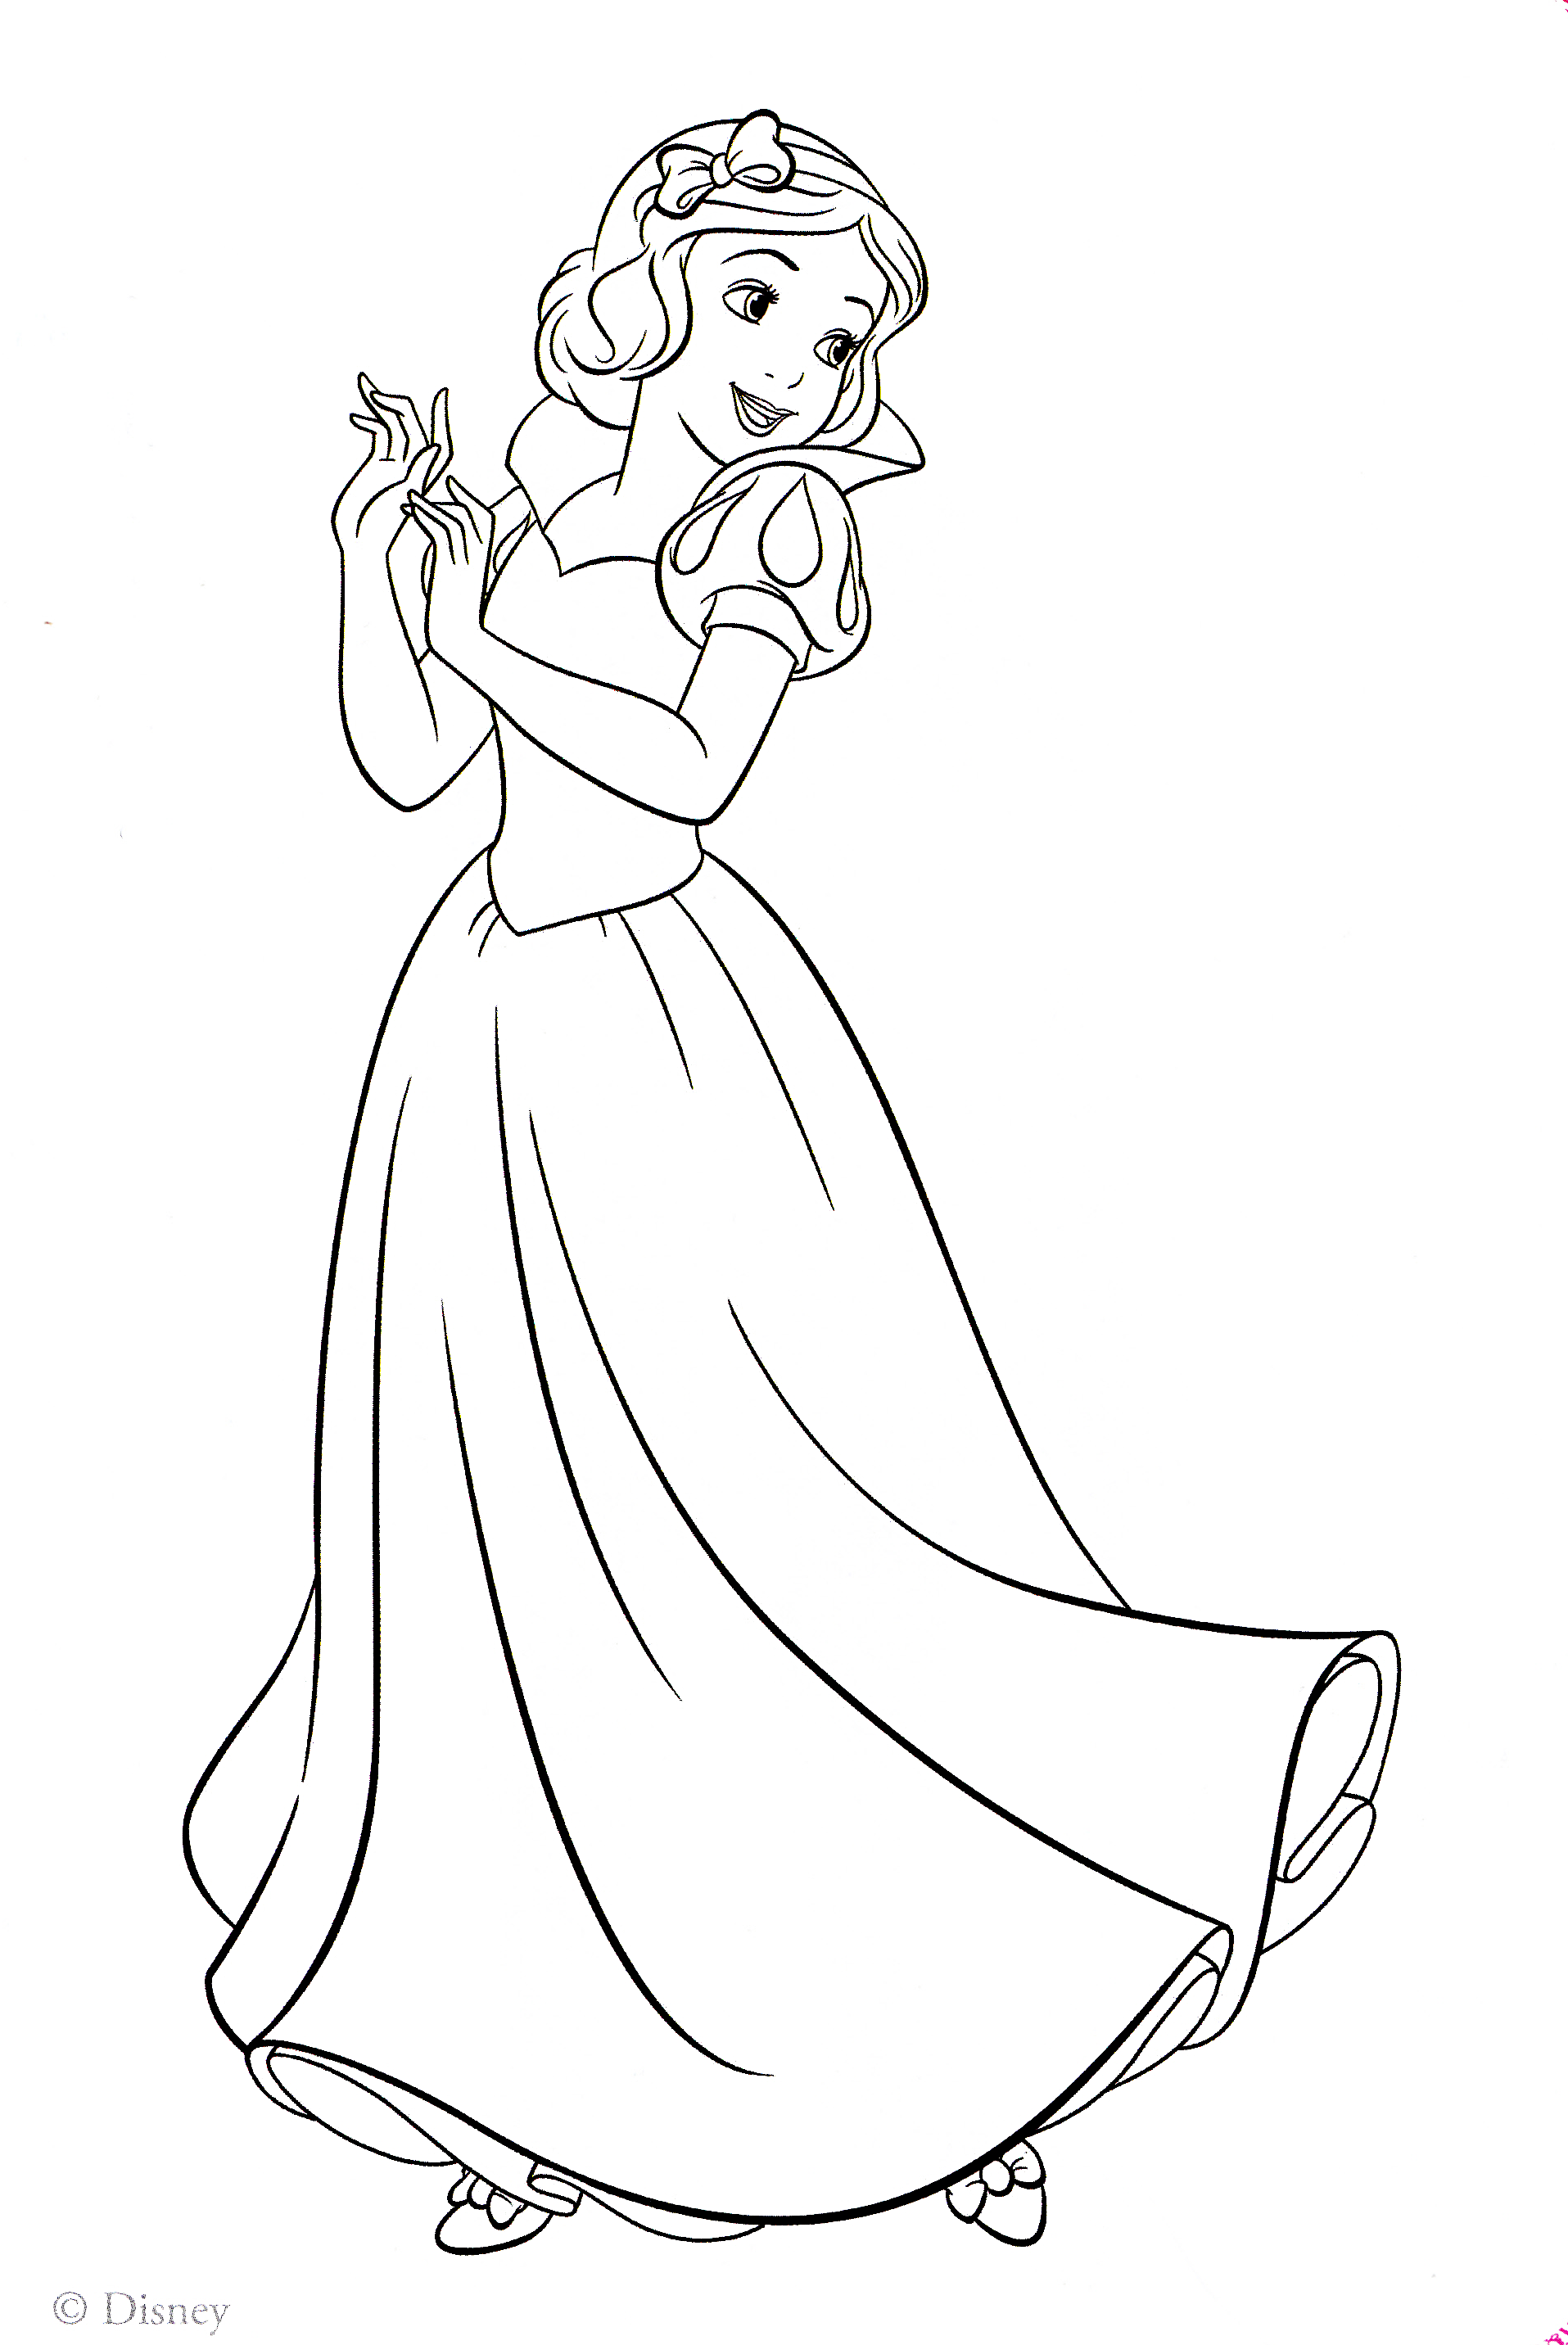 Walt Disney Coloring Pages Princess Snow White Walt Disney Characters Phot Disney Princess Coloring Pages Snow White Coloring Pages Princess Coloring Pages